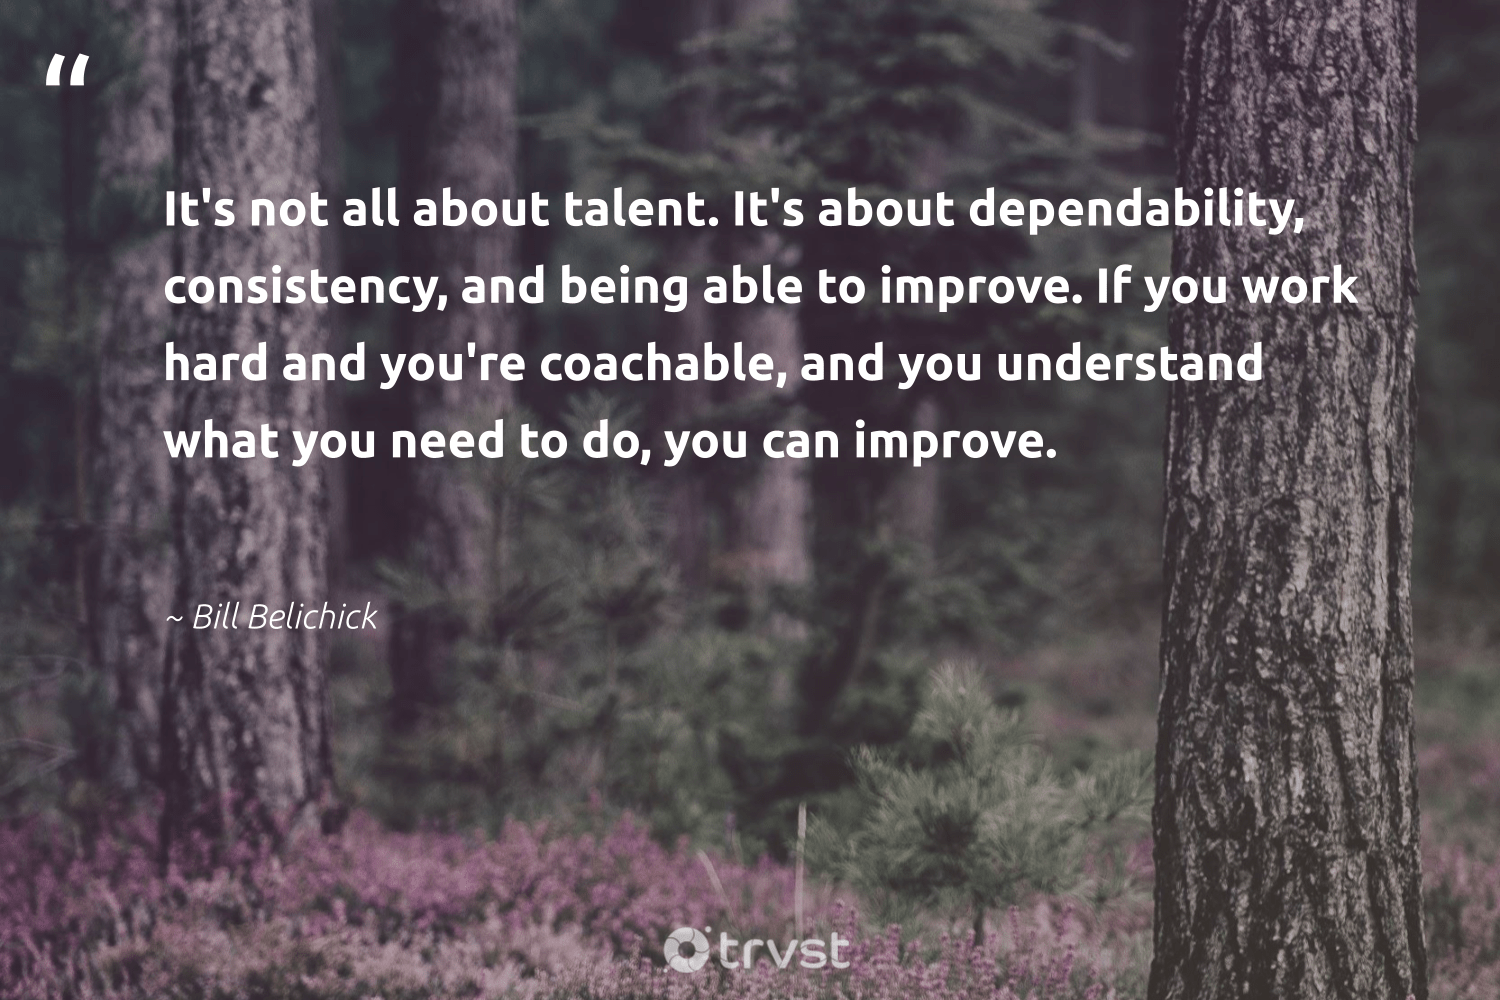 """""""It's not all about talent. It's about dependability, consistency, and being able to improve. If you work hard and you're coachable, and you understand what you need to do, you can improve.""""  - Bill Belichick #trvst #quotes #talent #ethicalbusiness #dogood #weareallone #socialchange #makeadifference #dotherightthing #betterplanet #planetearthfirst #giveback"""